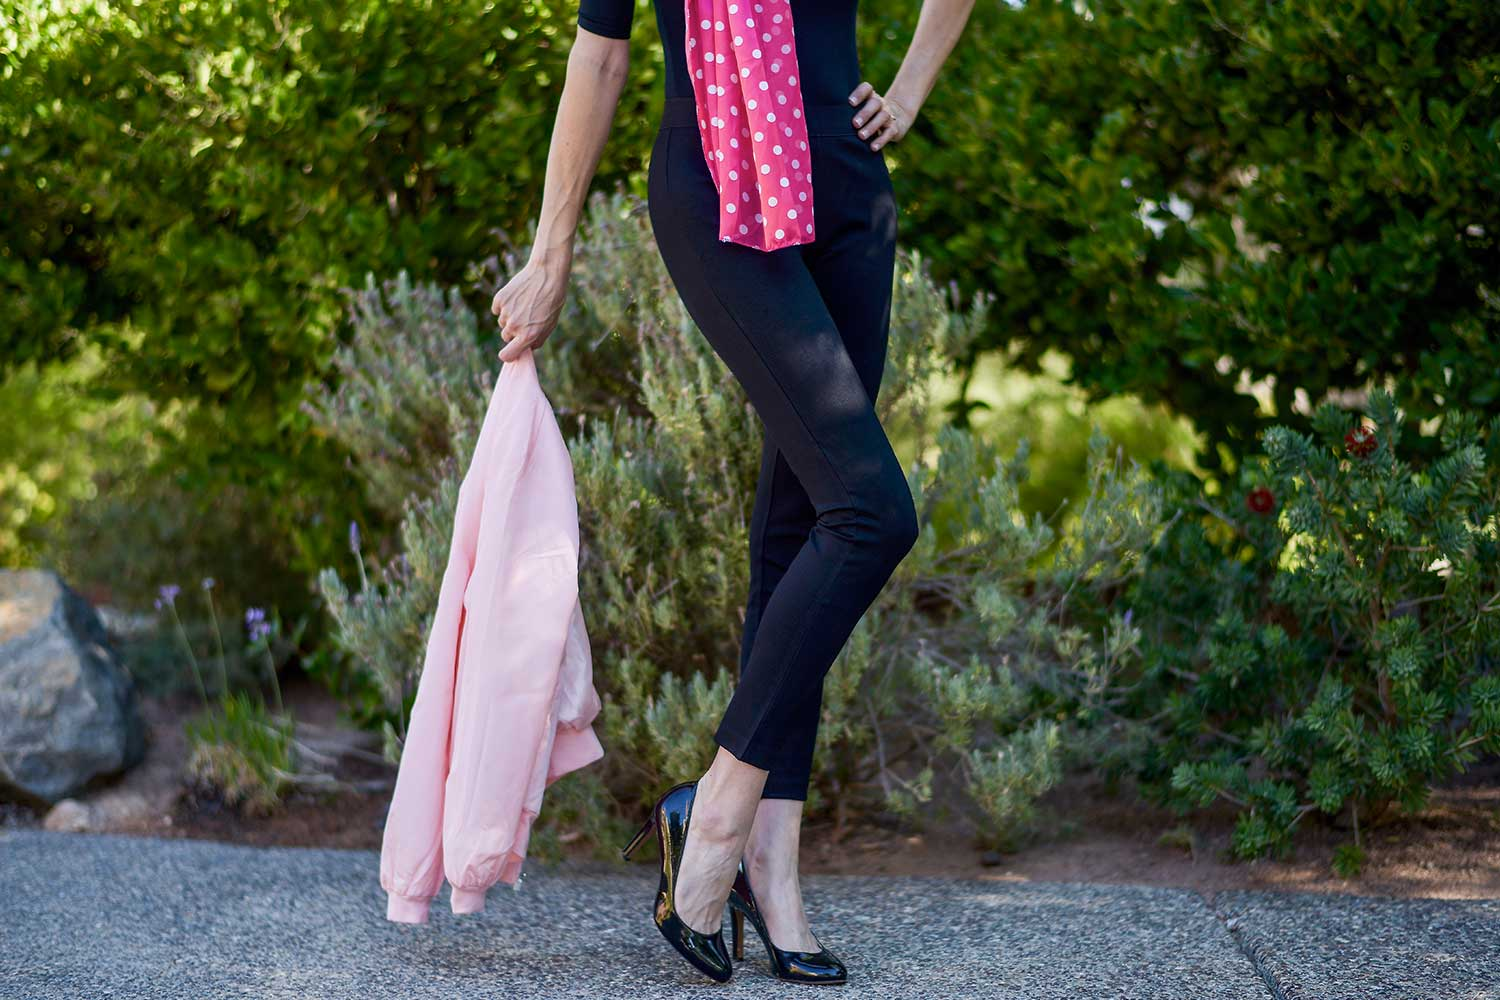 jenna-pilant-lucky-little-mustardseed-san-diego-fashion-blogger-halloween-2016-costume-ideas-grease-pink-lady-costume-4